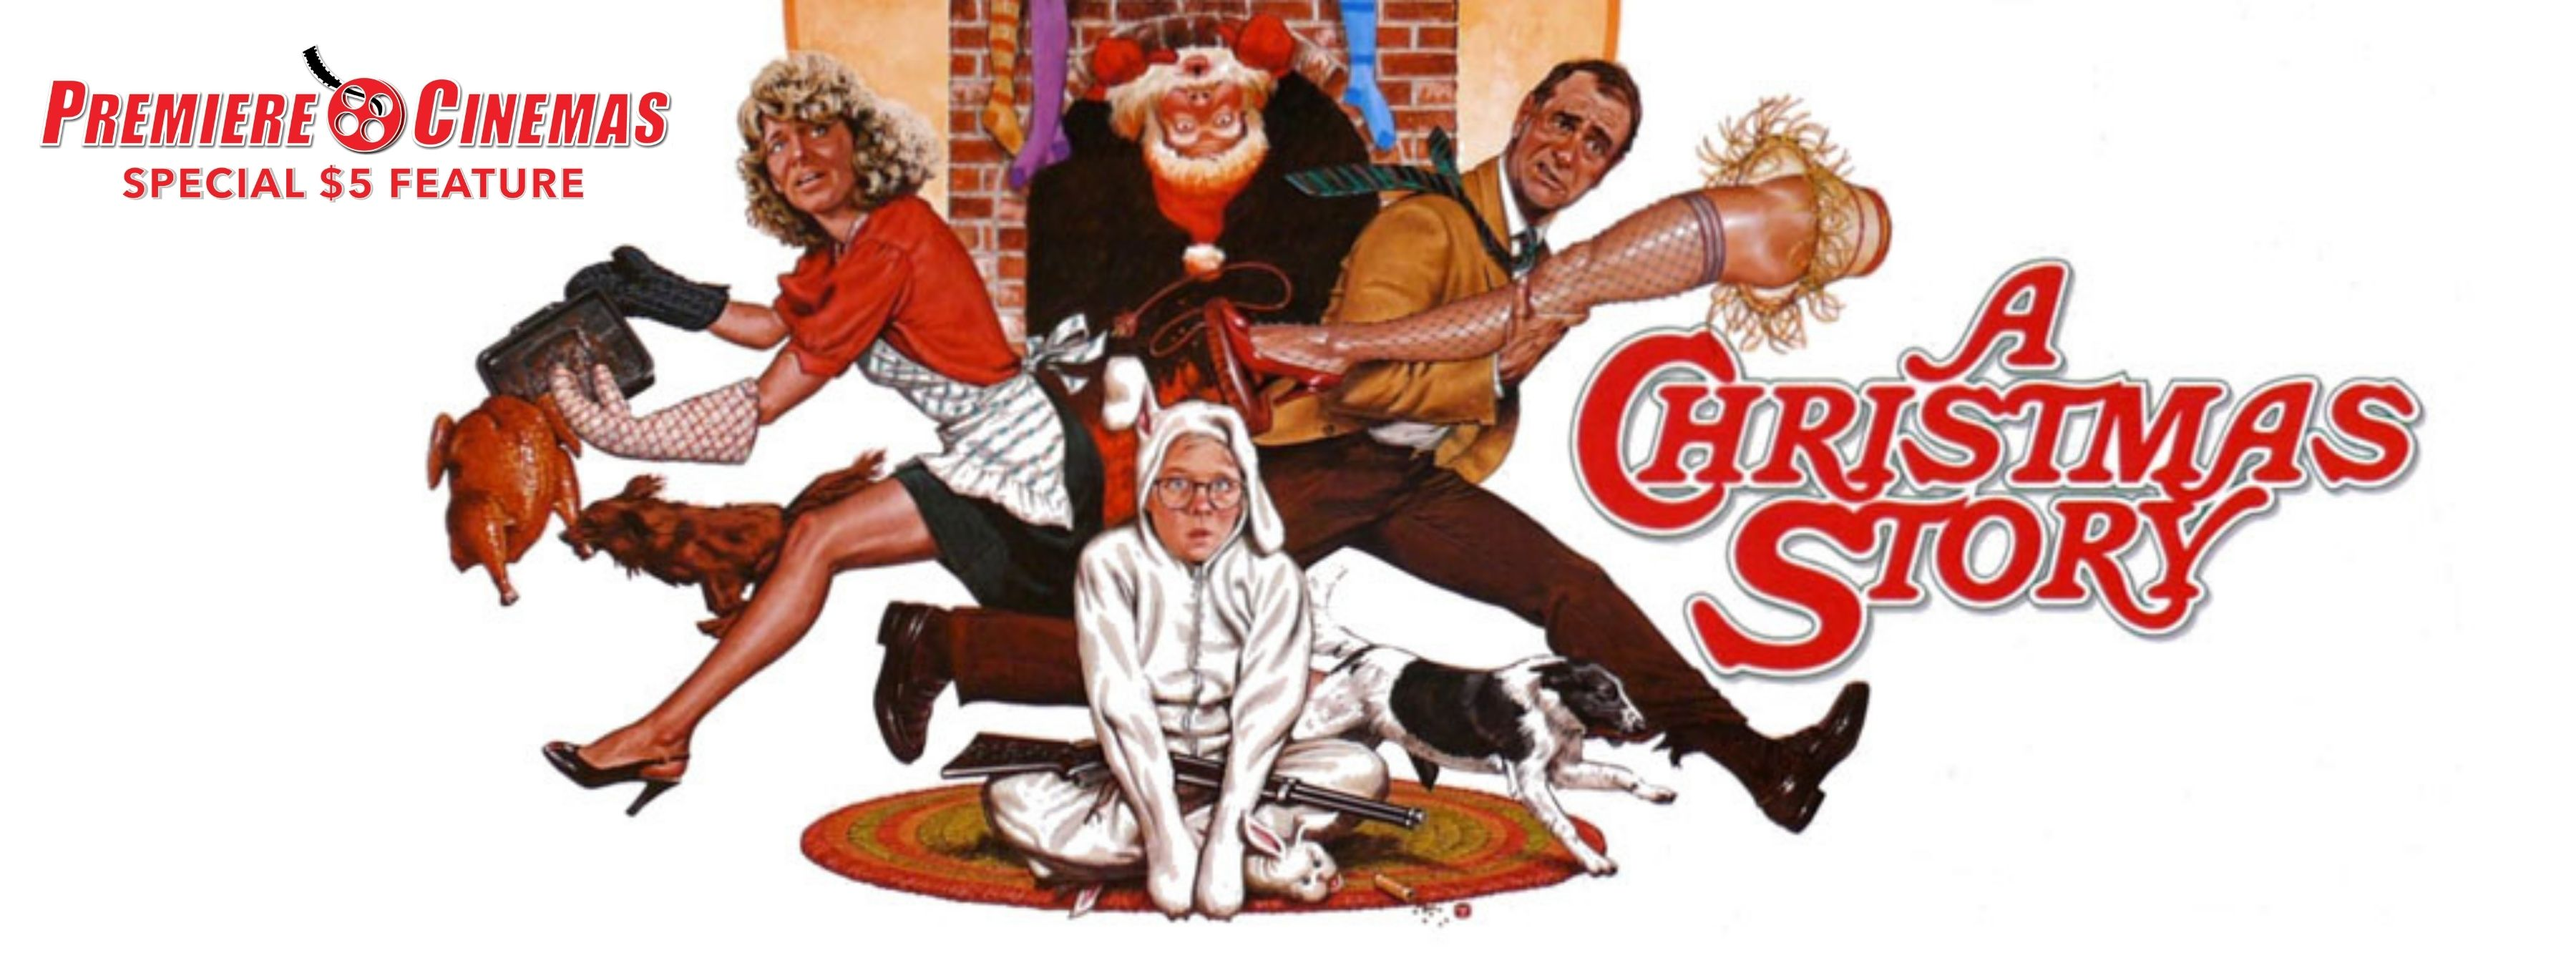 CHRISTMAS STORY NOW PLAYING